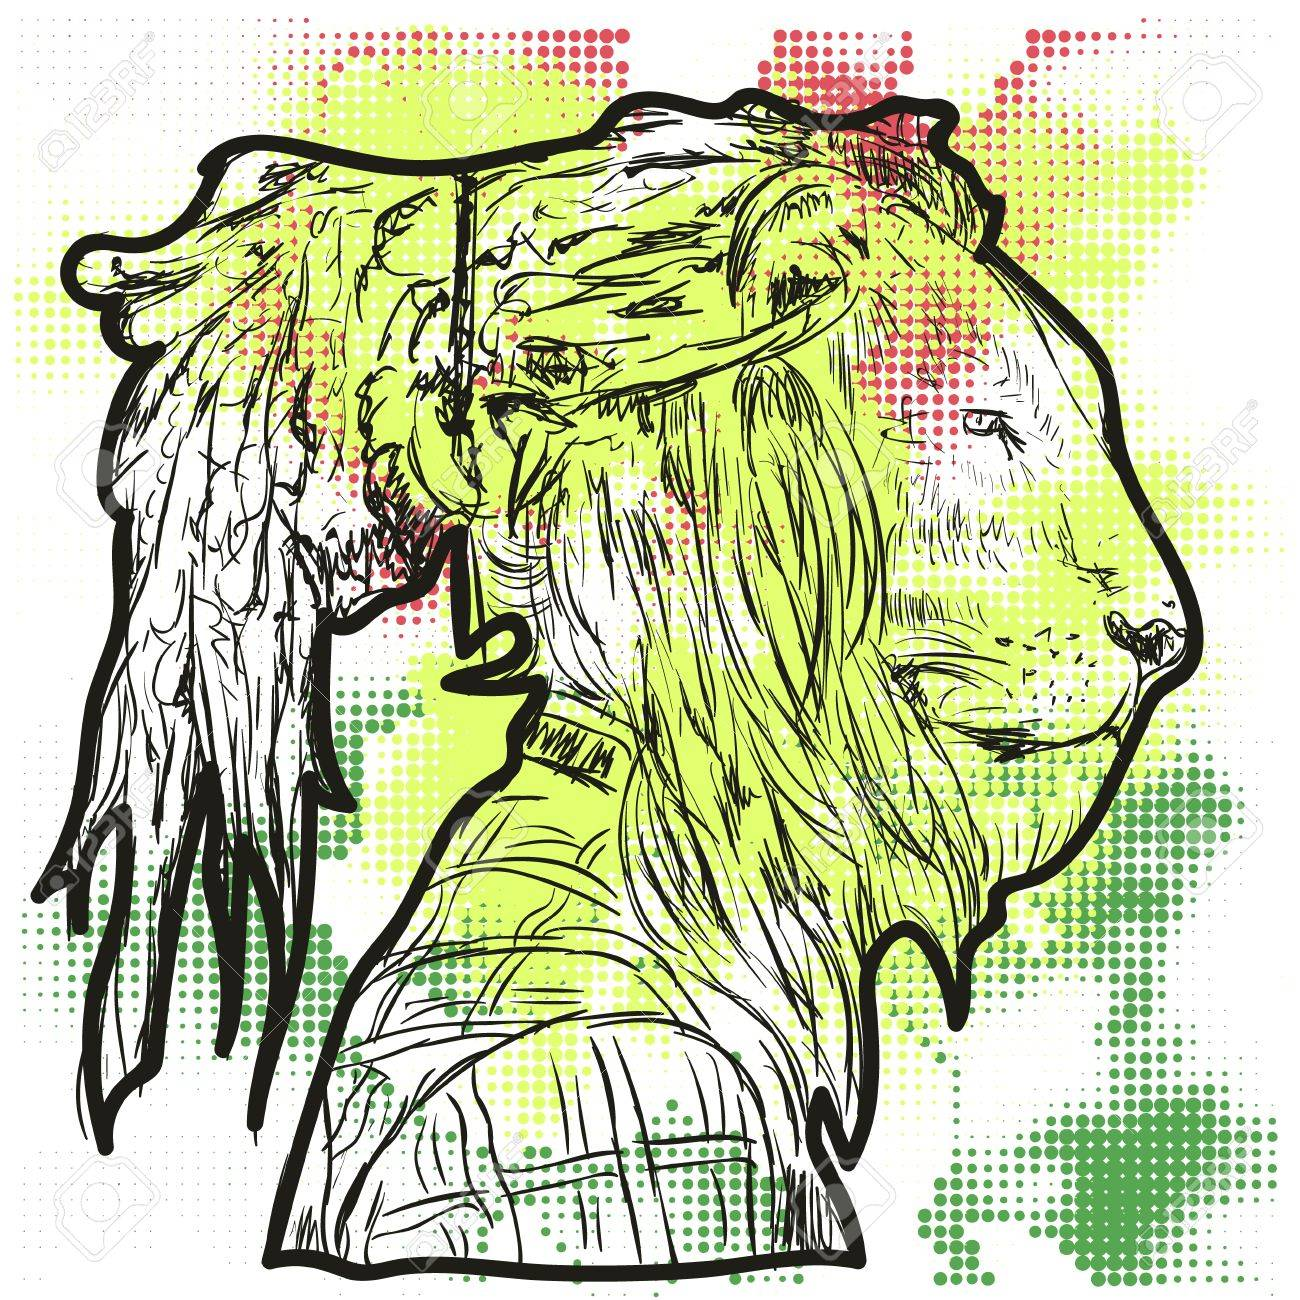 1300x1300 The Lion With The Human Body. A Man With The Head Of A Lion. Lion